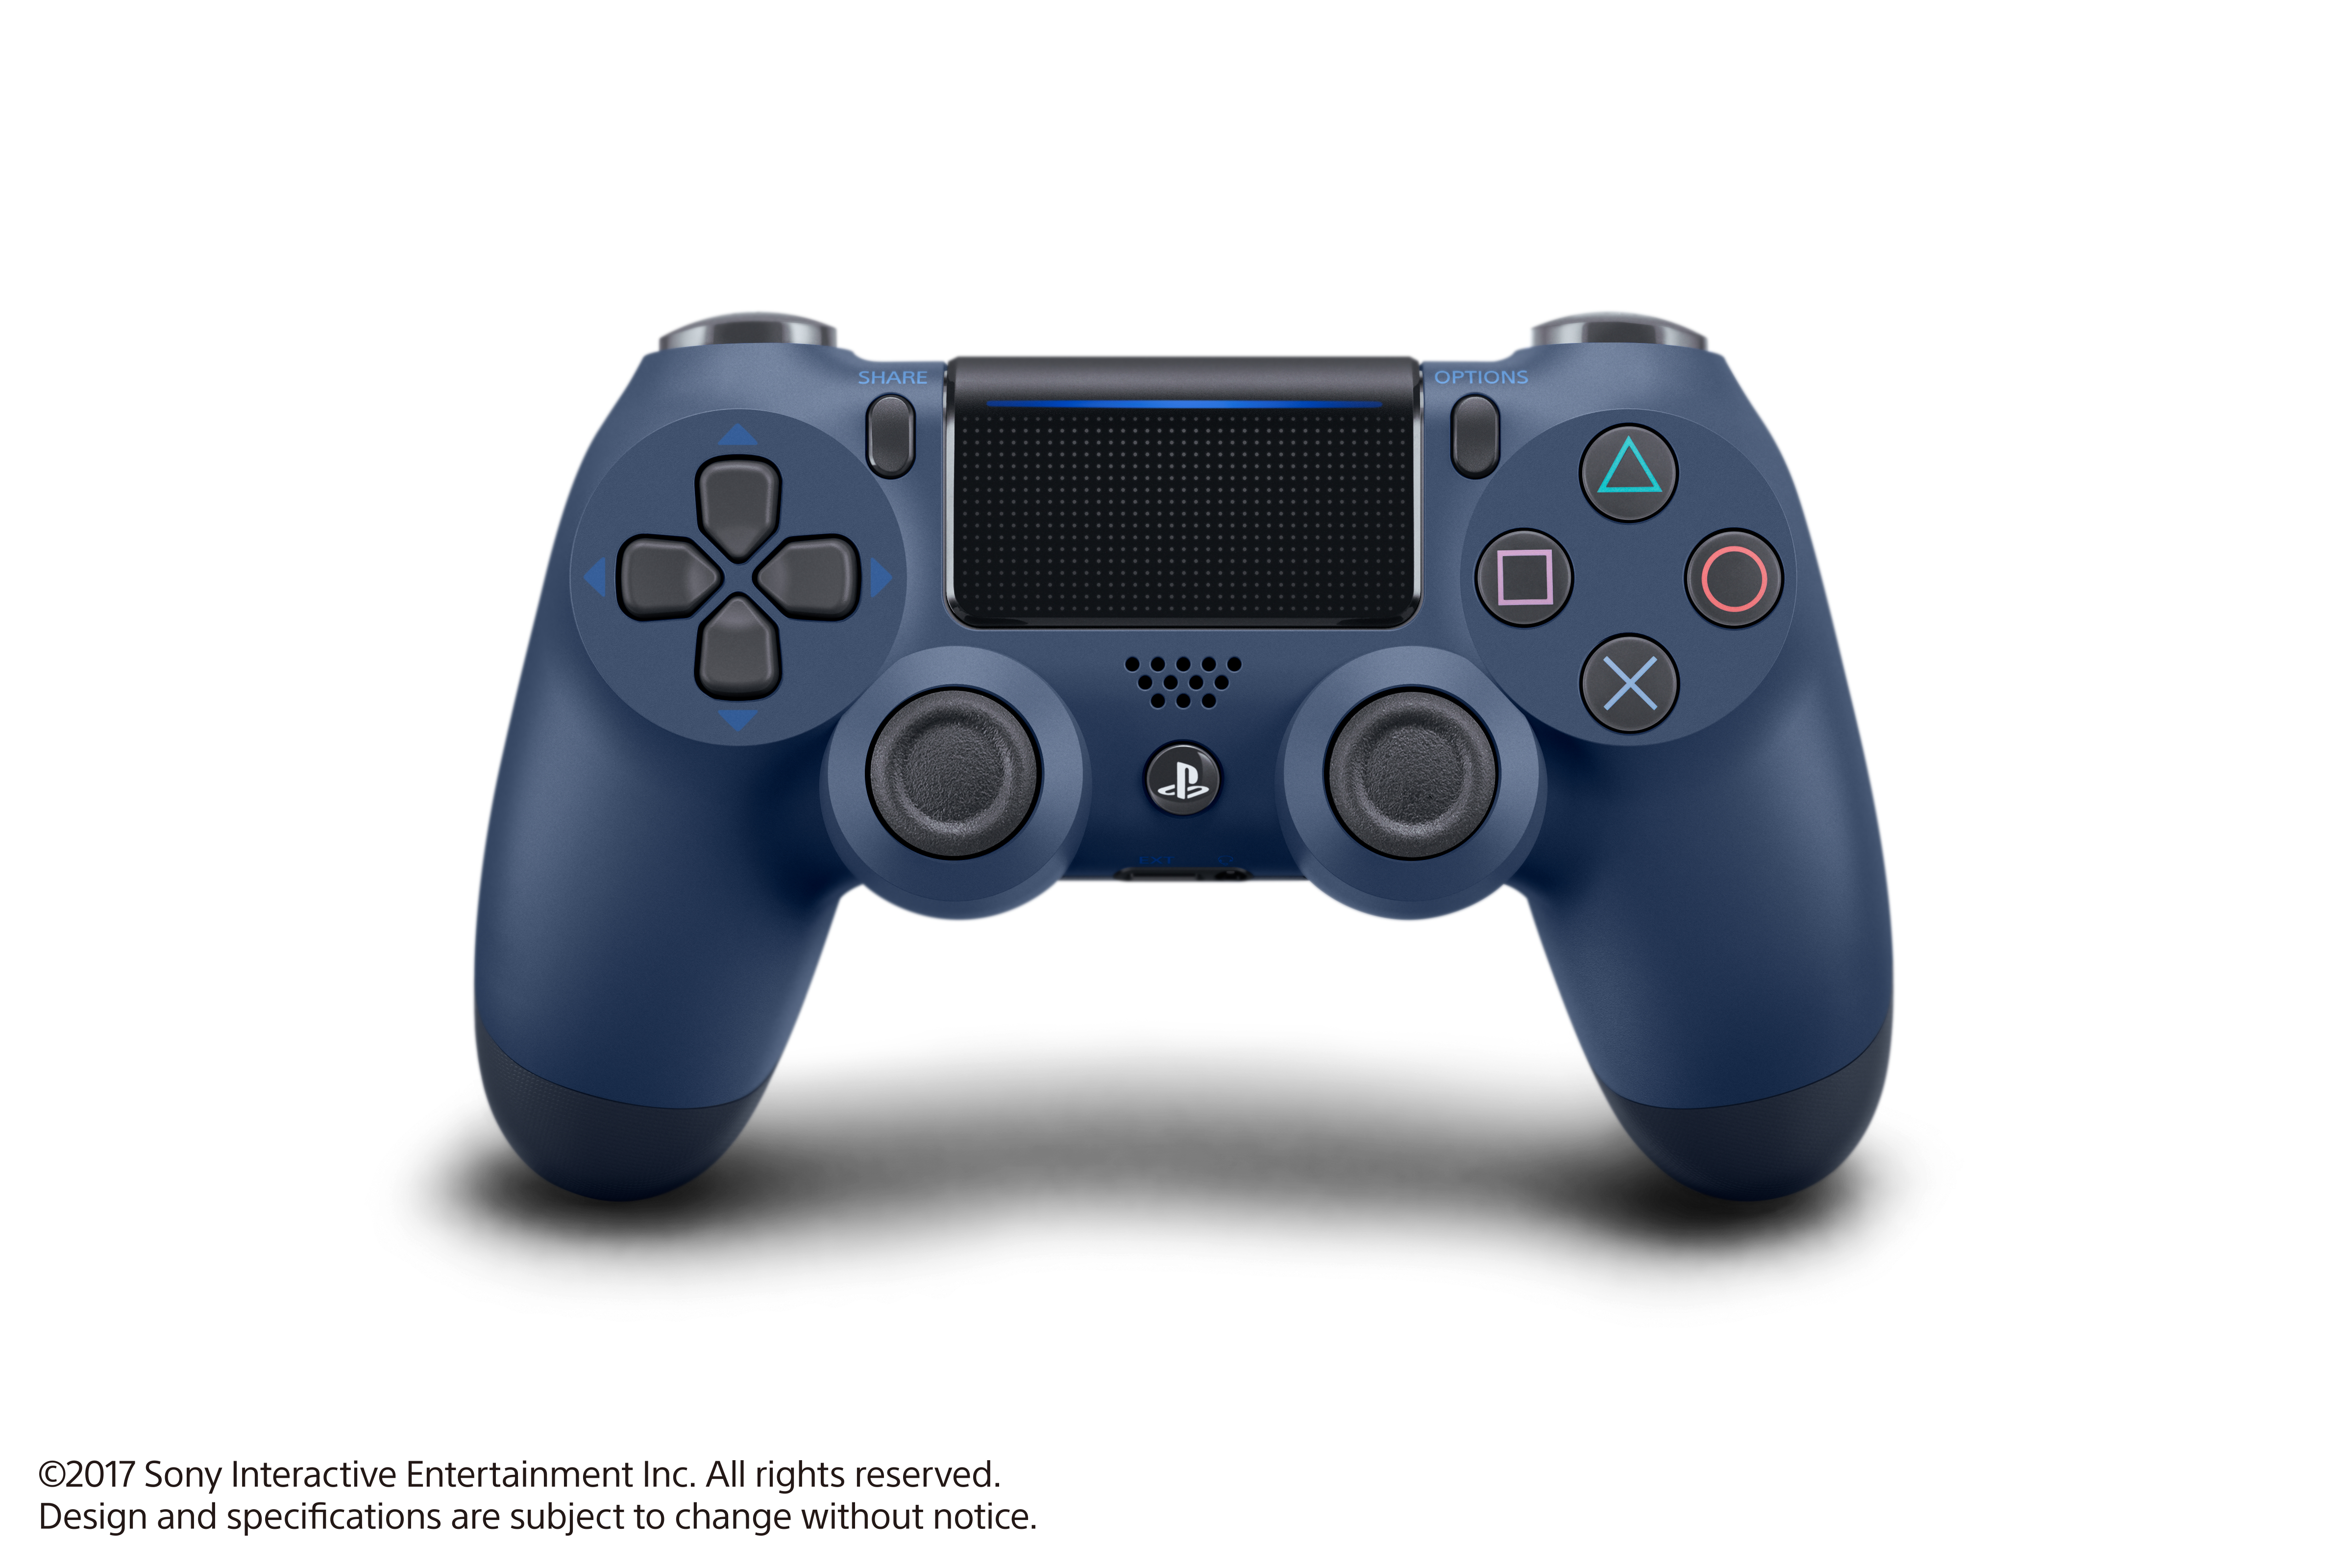 Sony Playstation 4 DualShock 4 Controller, Midnight Blue, 3002840 by Sony